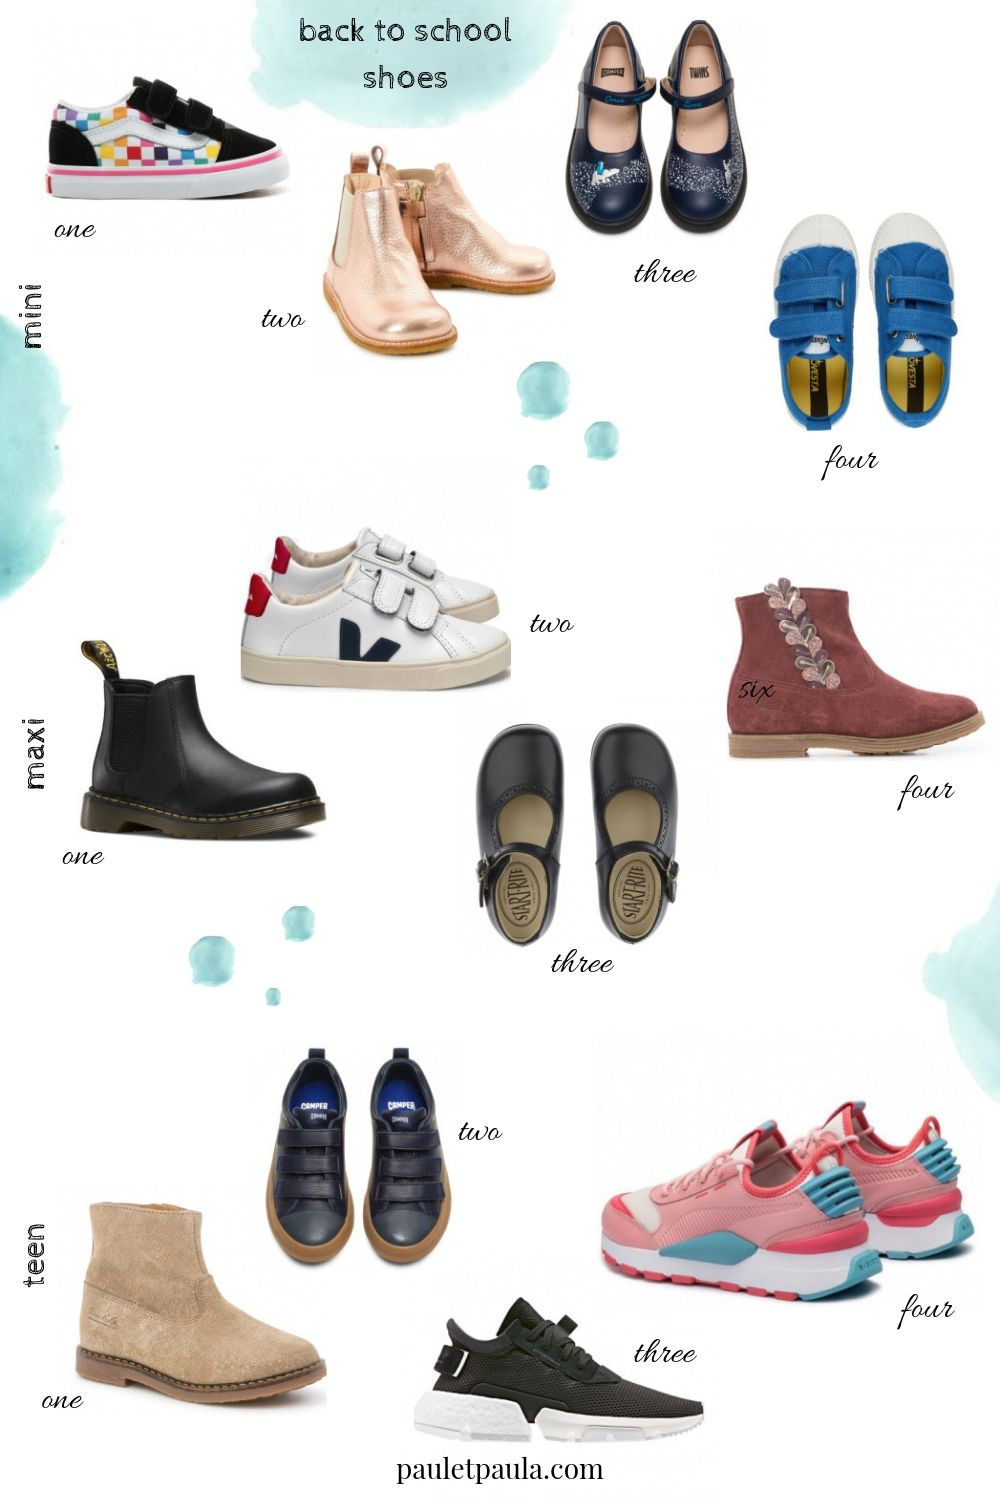 Back to School 2019 - shoes for mini